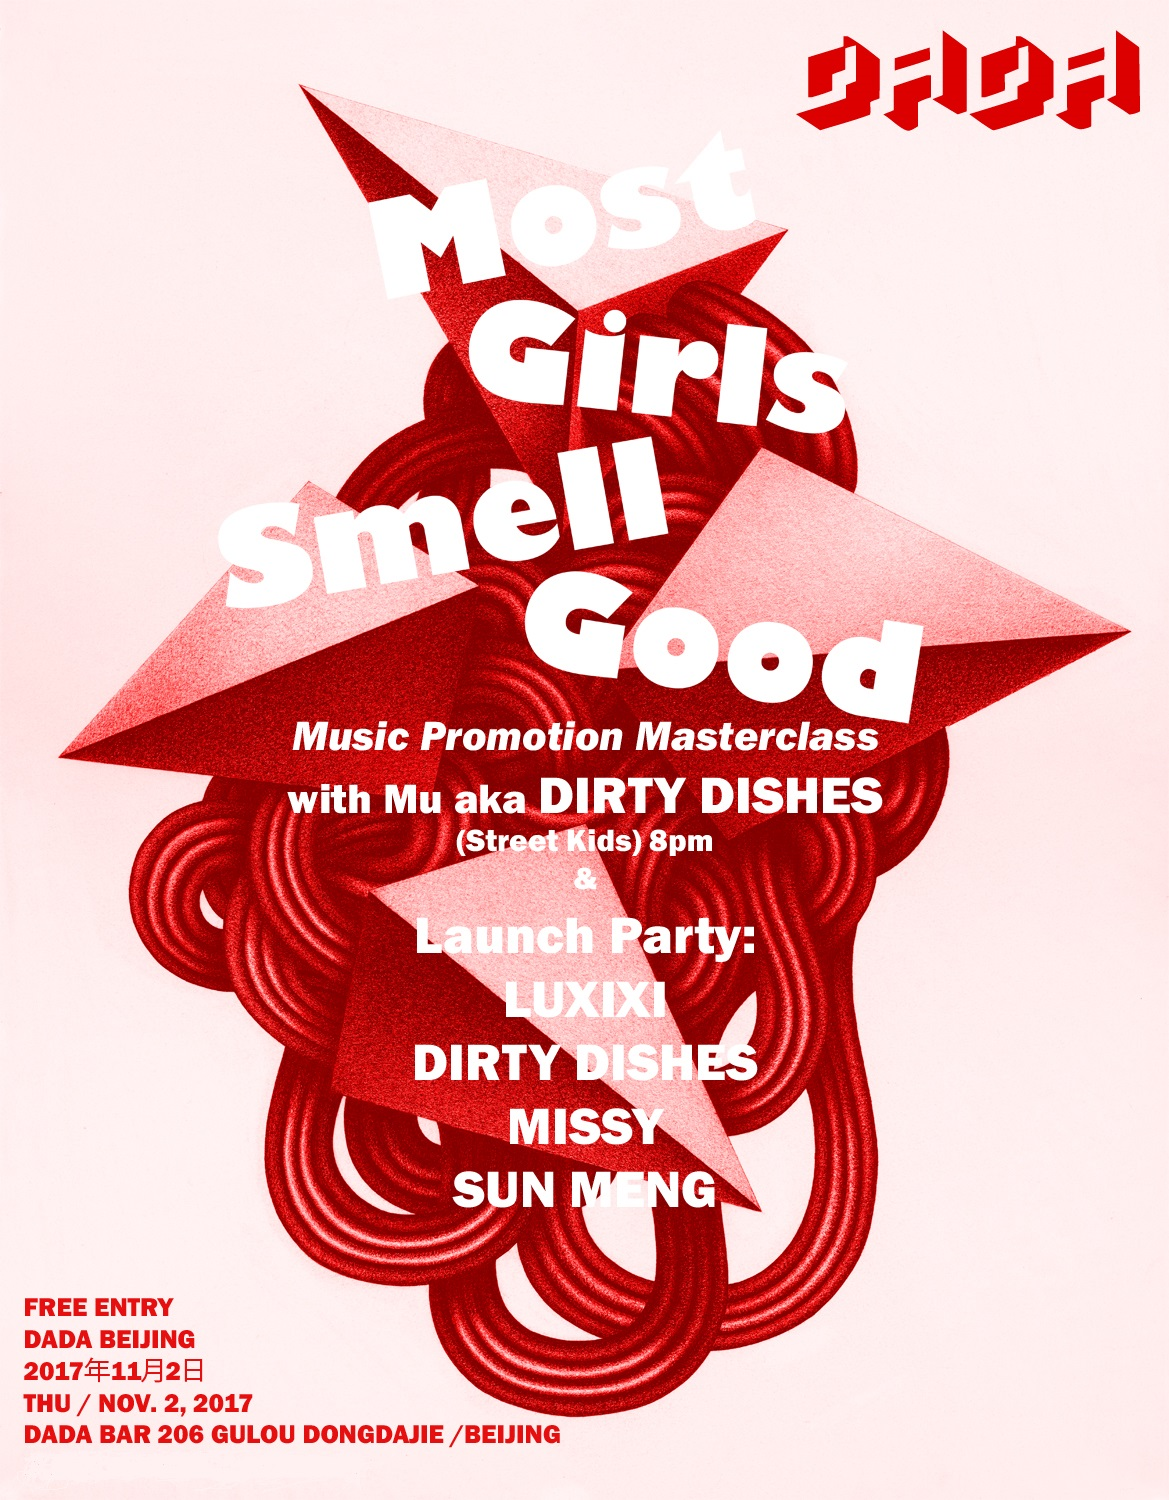 Most Girls Smell Good Music Promotion Masterclass and Launch Party